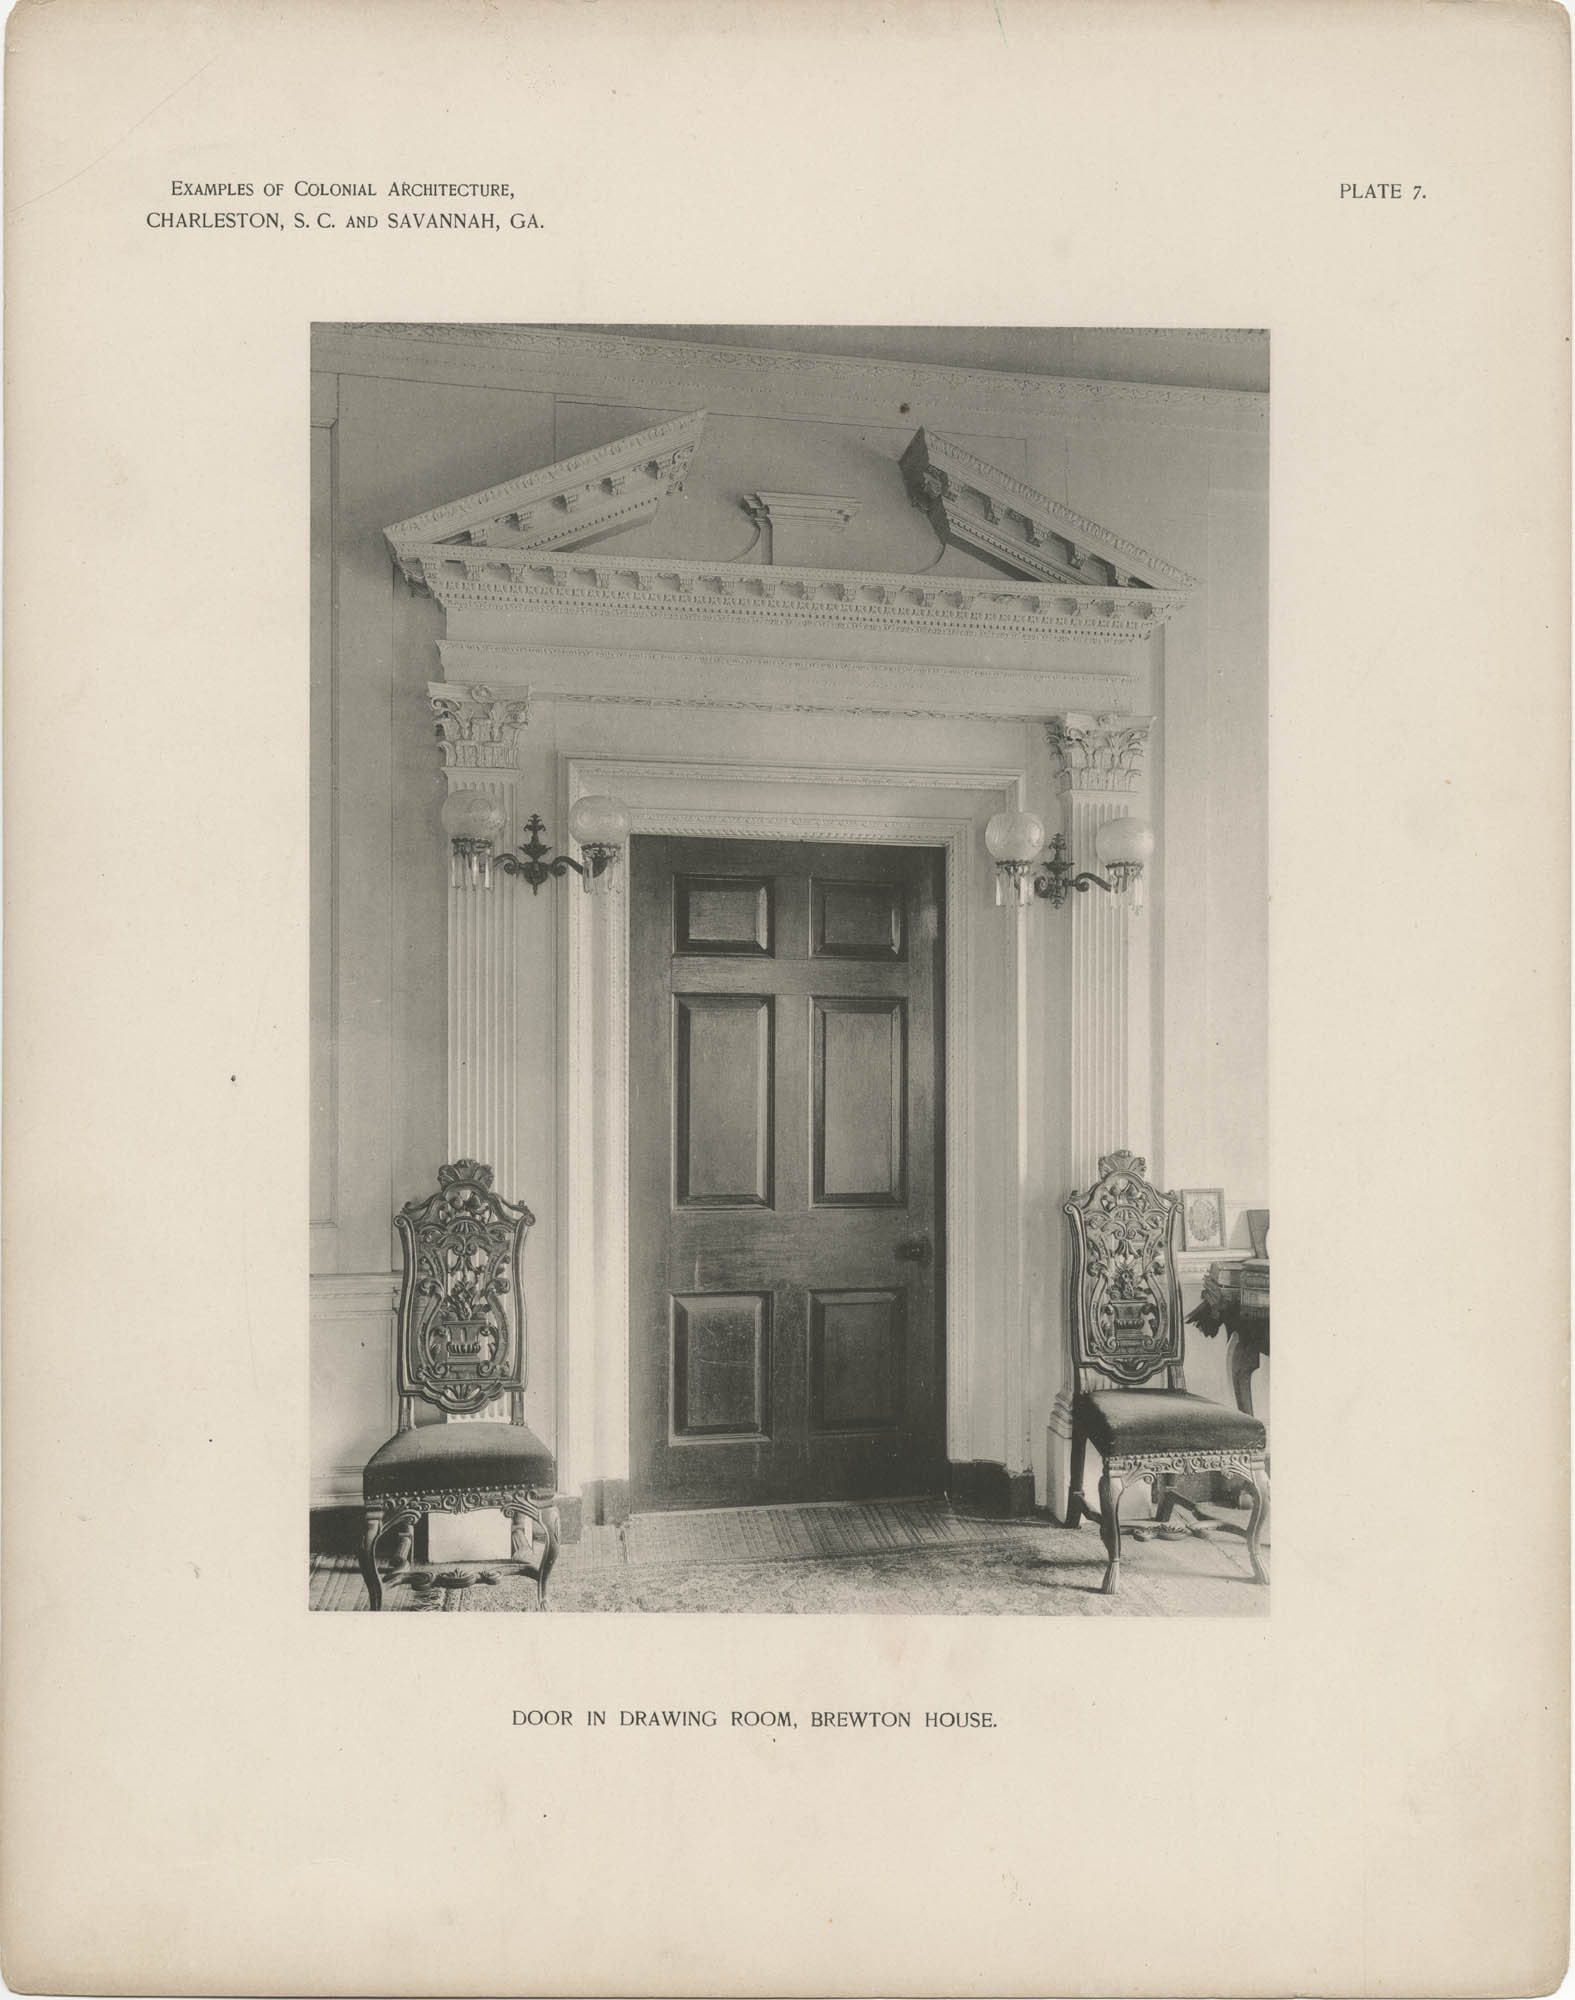 Plate 7: Door in Drawing Room, Brewton House